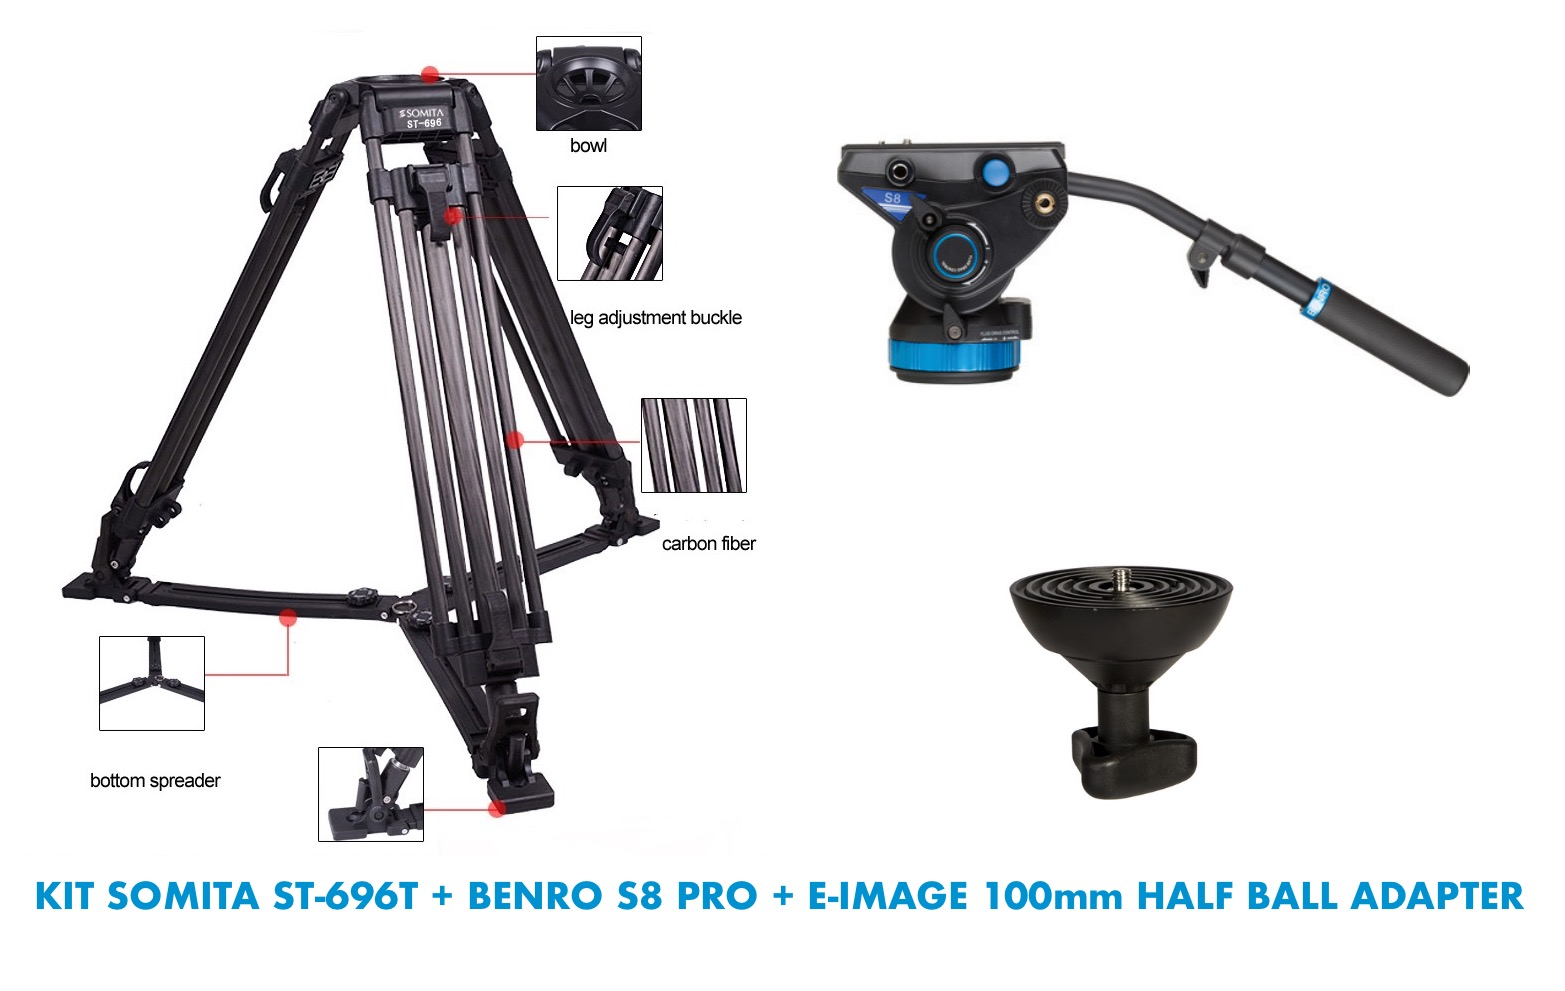 KIT SOMITA ST-696T + BENRO S8 PRO + E-IMAGE 100mm HALF BALL ADAPTER